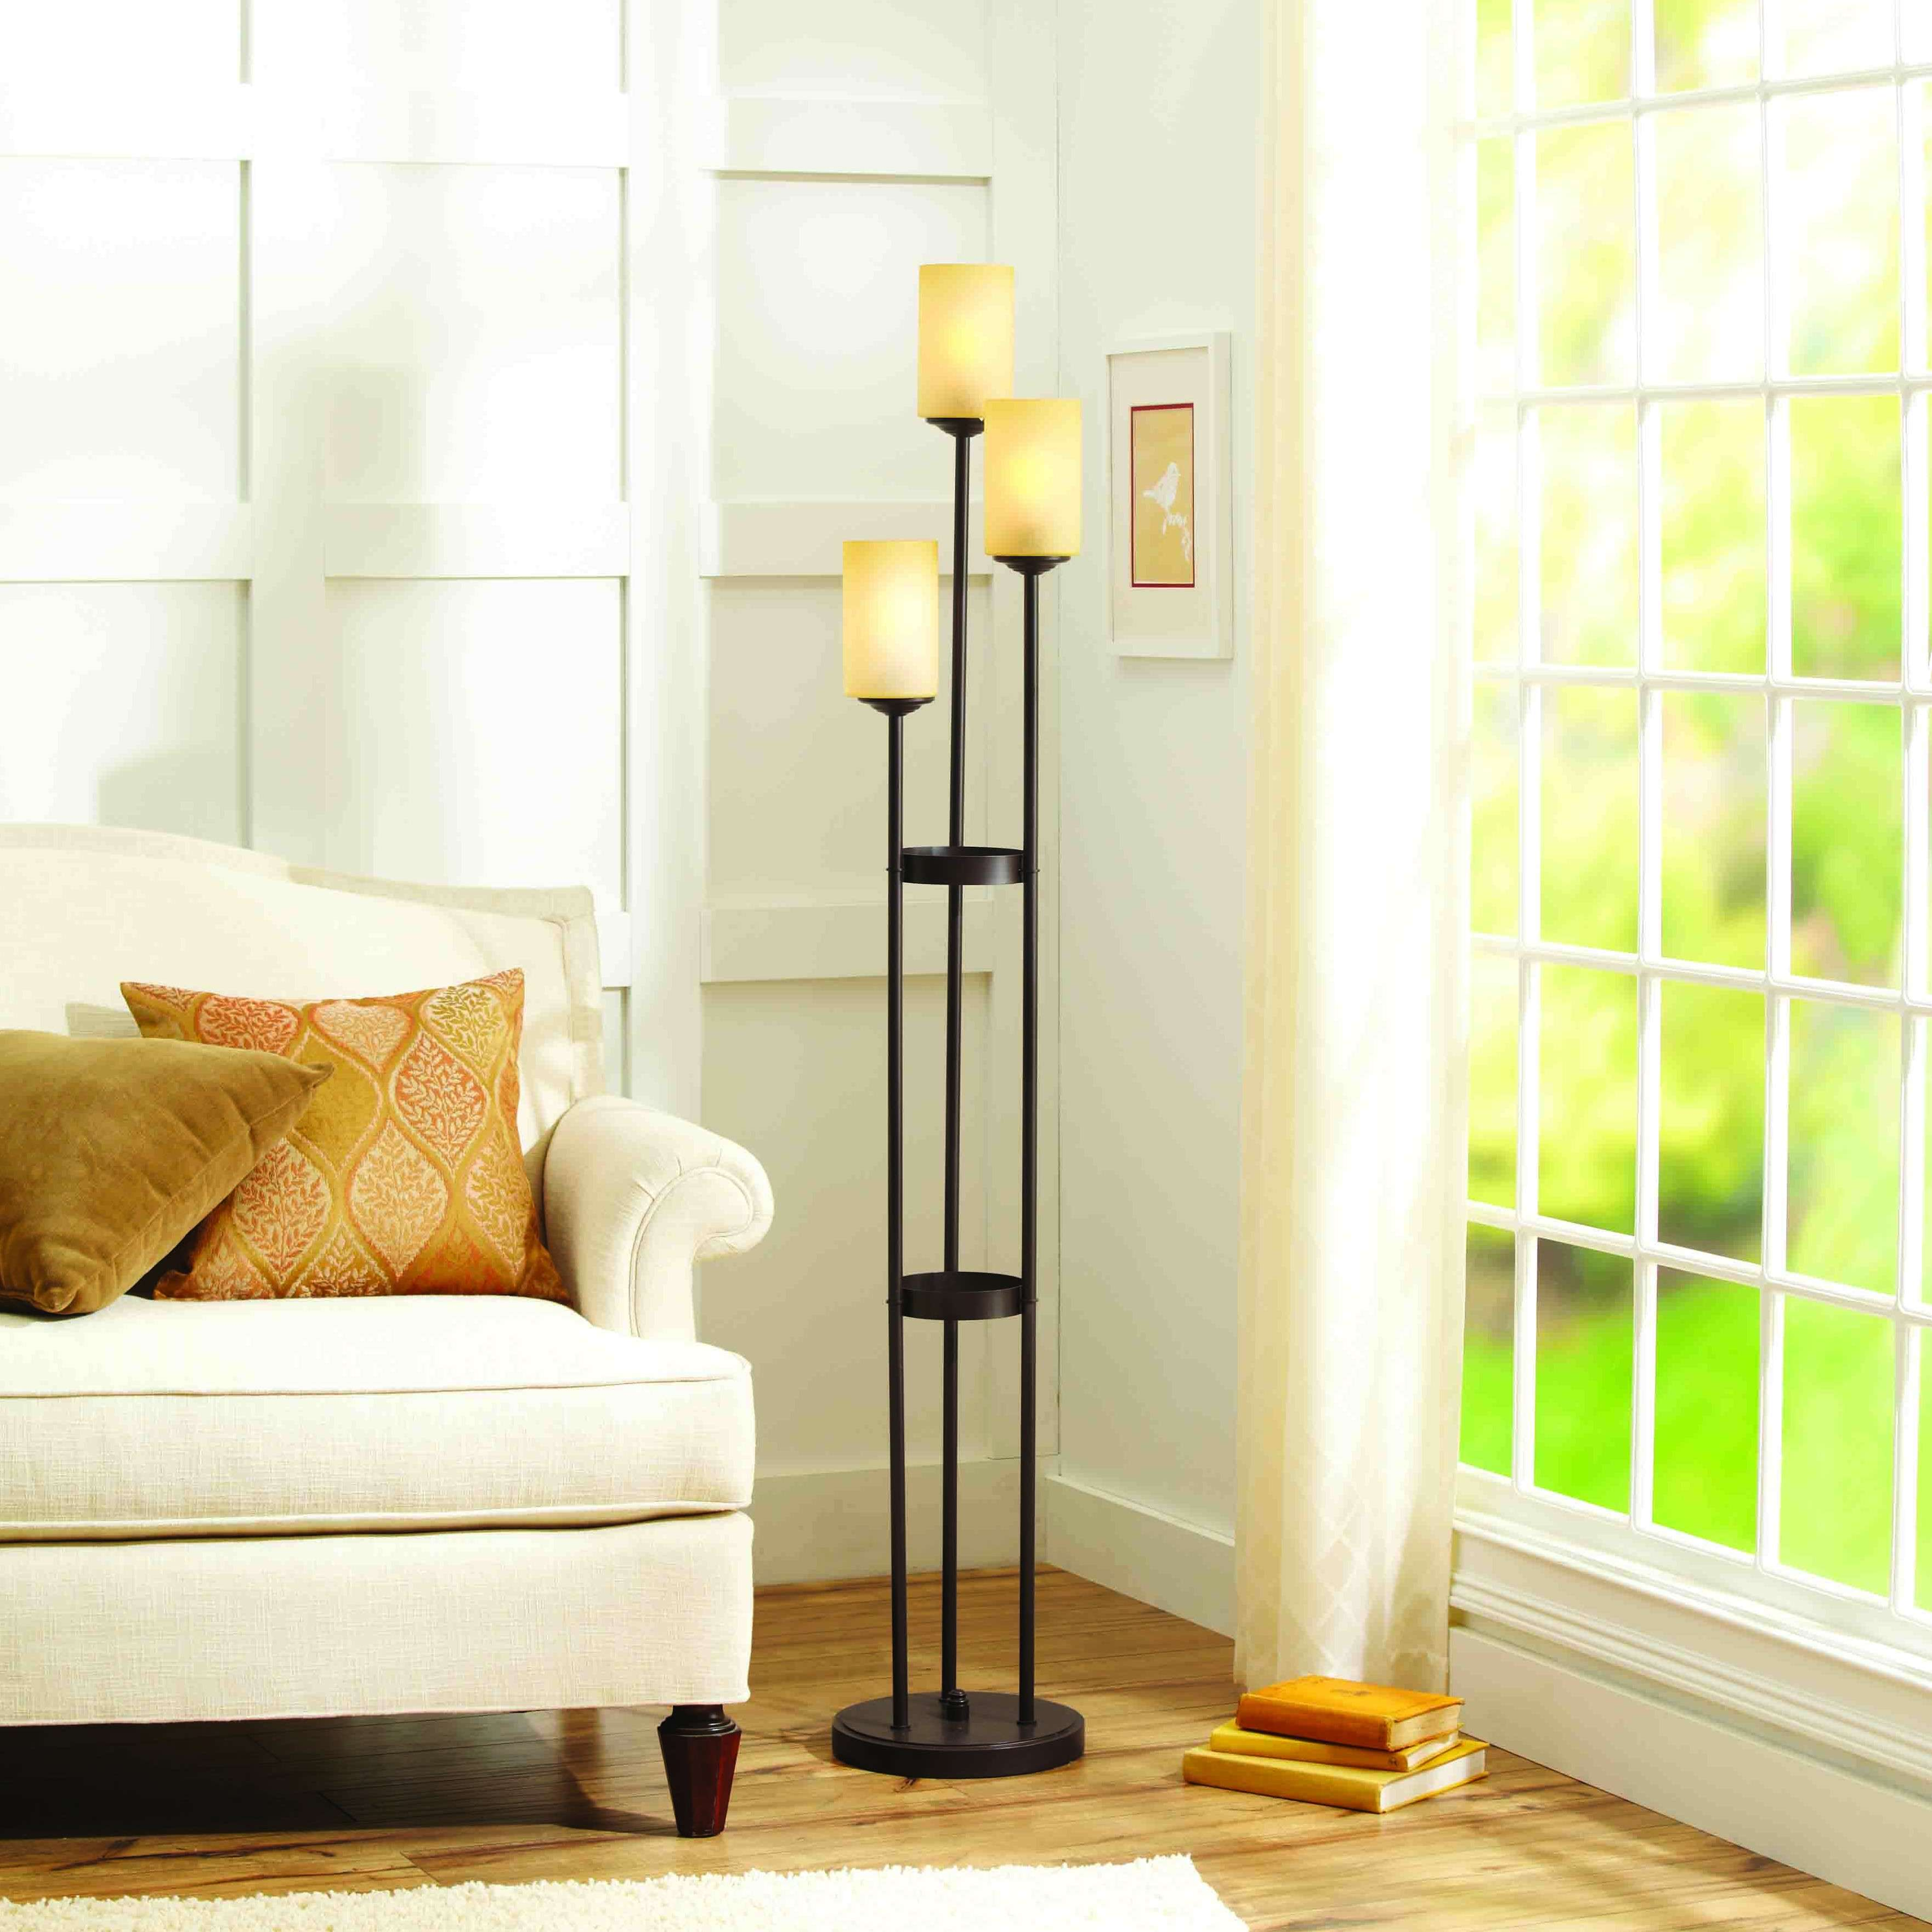 Better Homes and Gardens Triple Uplight Floor Lamp, Oil-Rubbed Bronze by Cheyenne Products